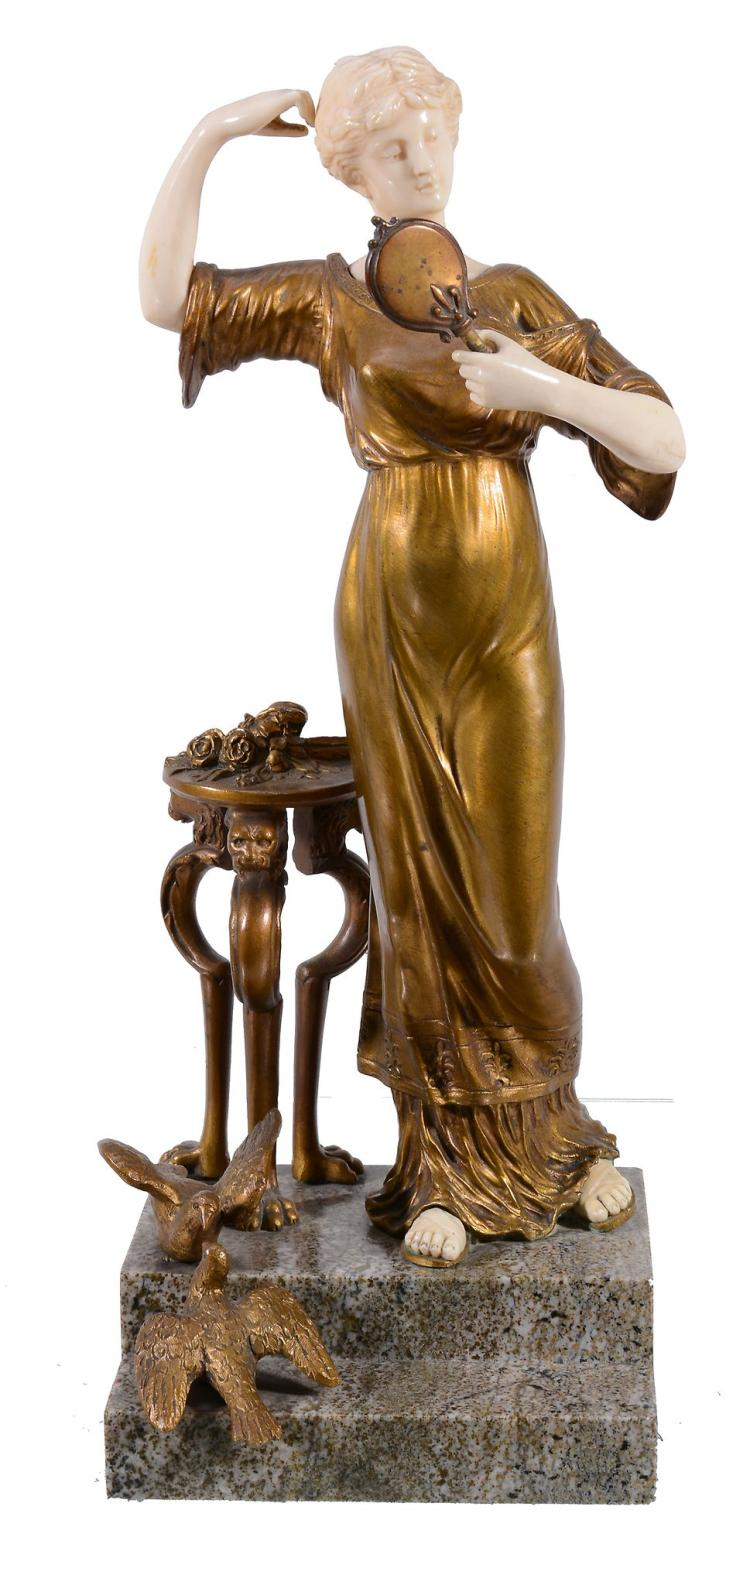 Henri Fugère, , an ivory and gilt bronze model of a maiden, early 20th century